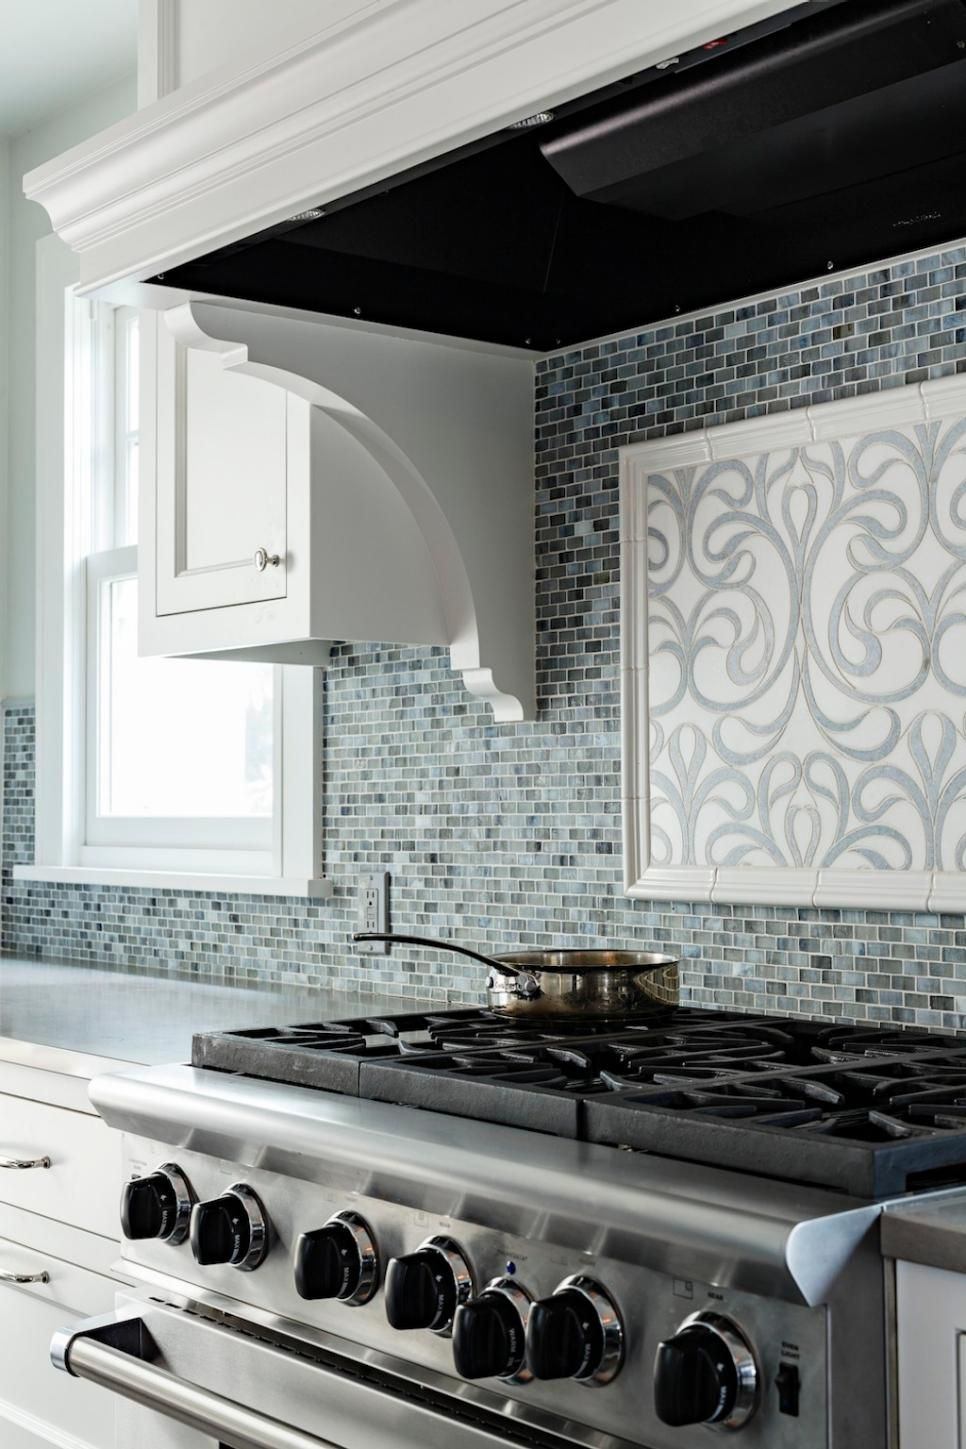 Decorative Tiles For Backsplash A Decorative Tile Backsplash Adds Pizzazz To The Cooking Area In